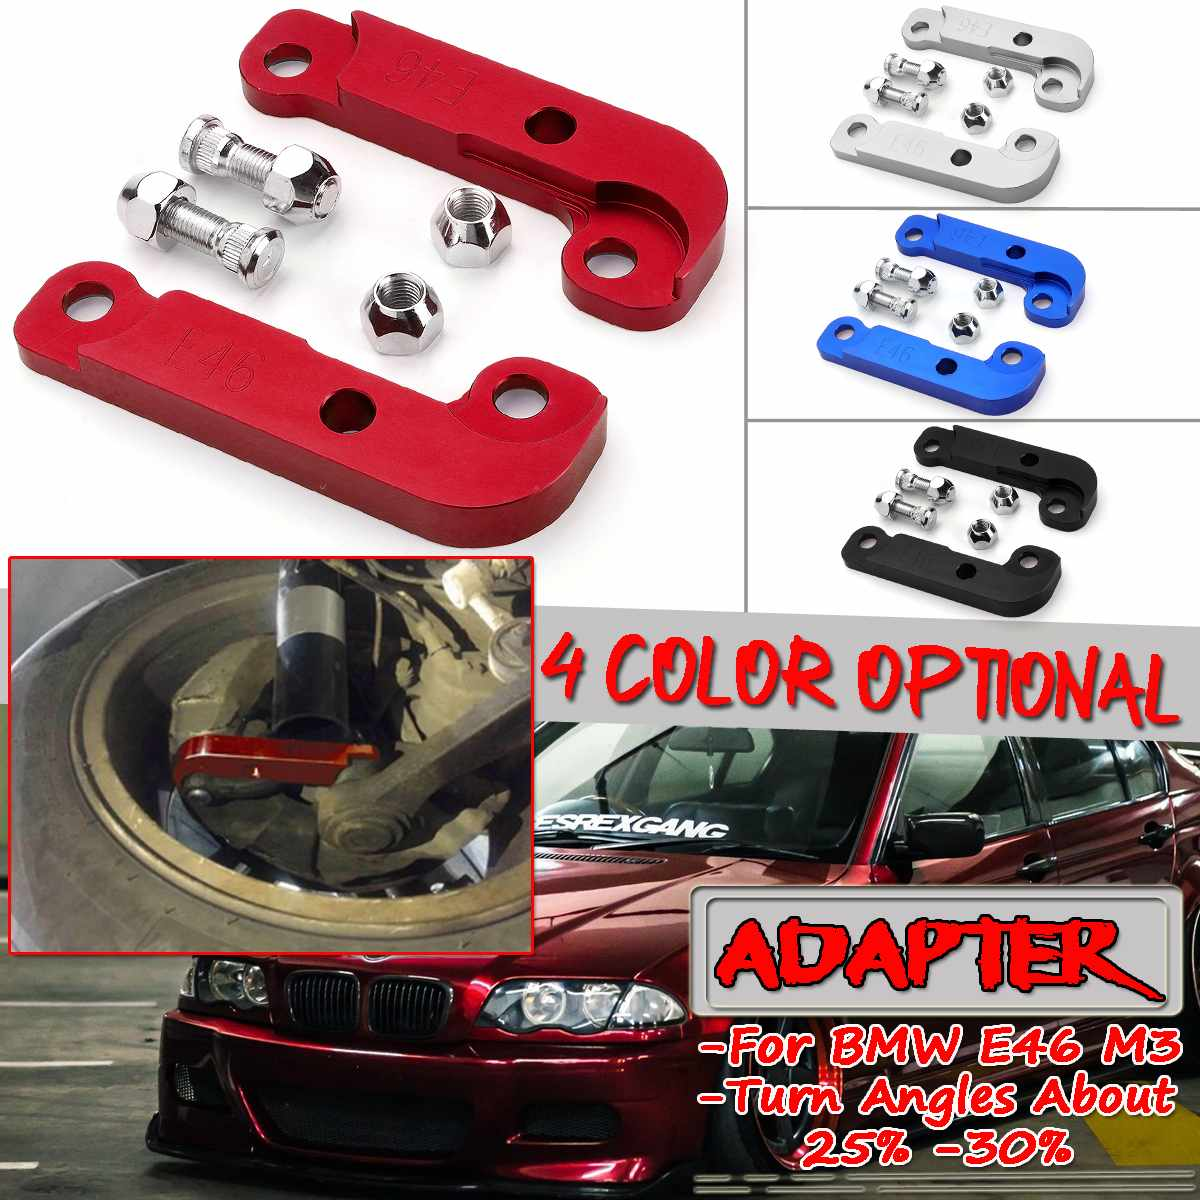 Adapter Increasing Turn Angles 25/% For BMW E46 M3 Tuning Drift Power  Racing Car